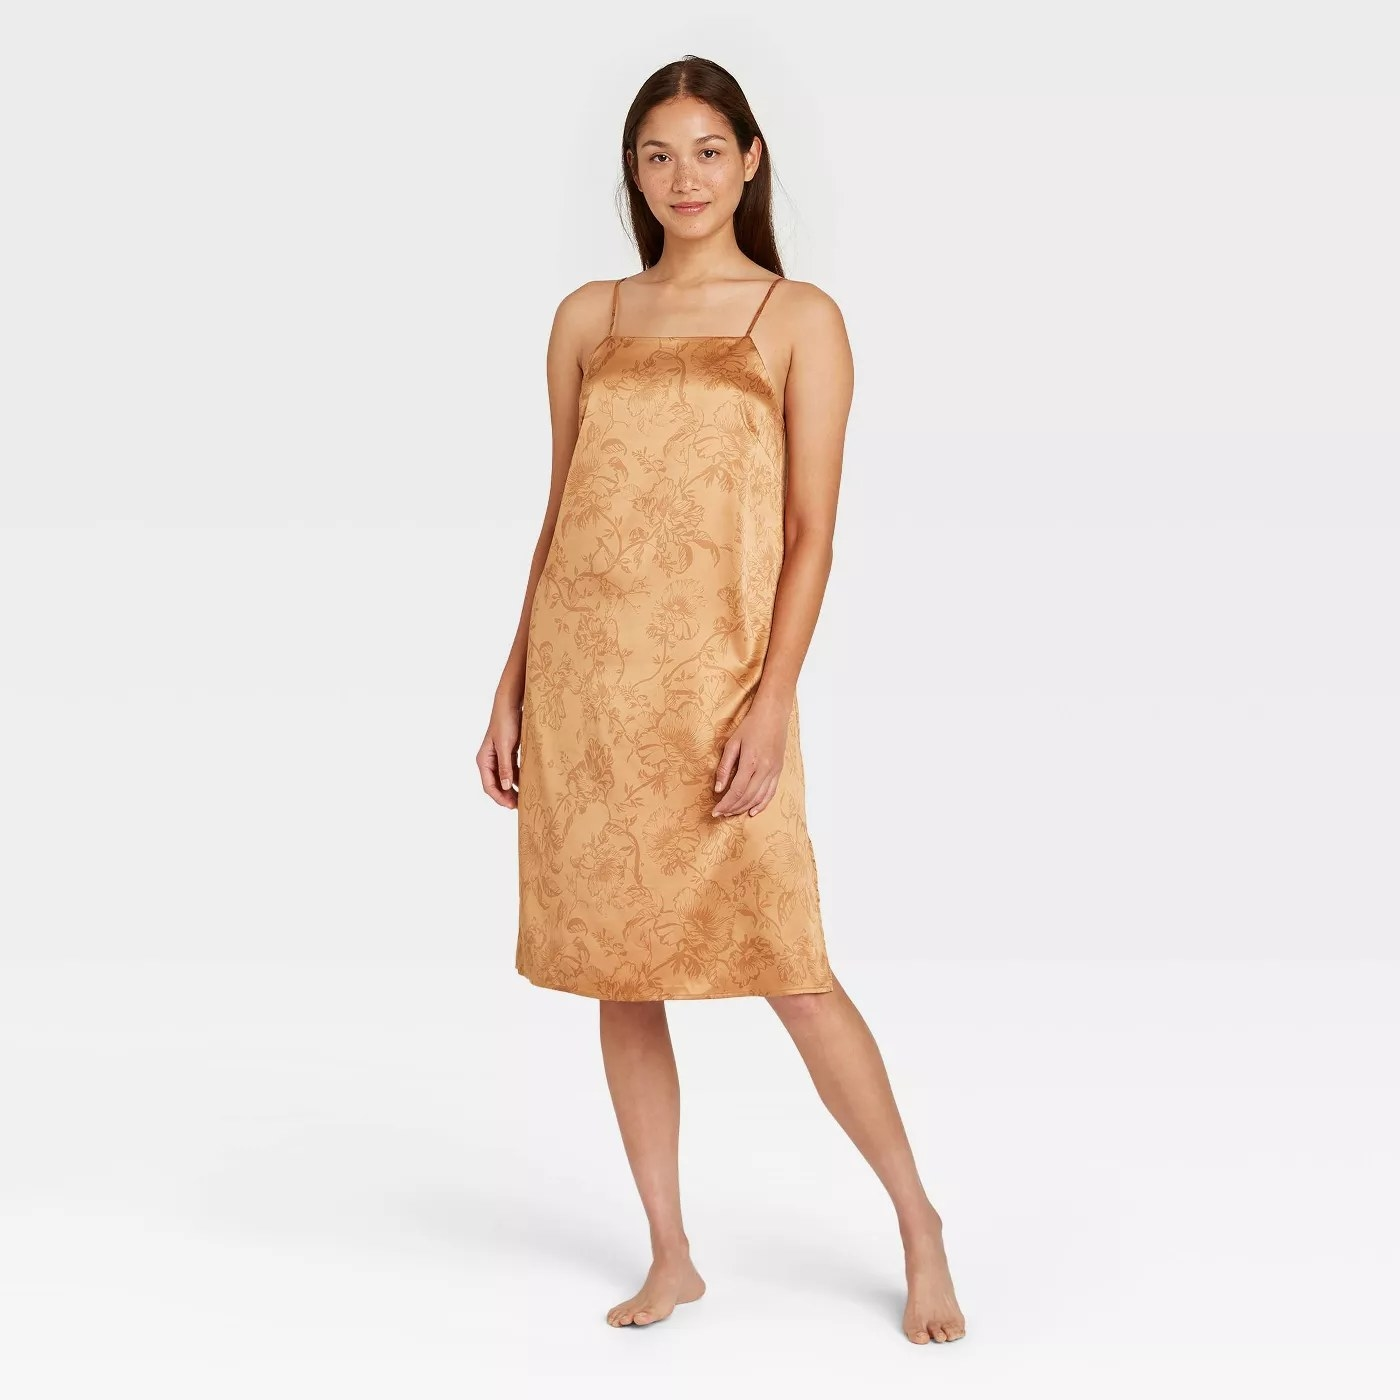 The gold satin nightgown